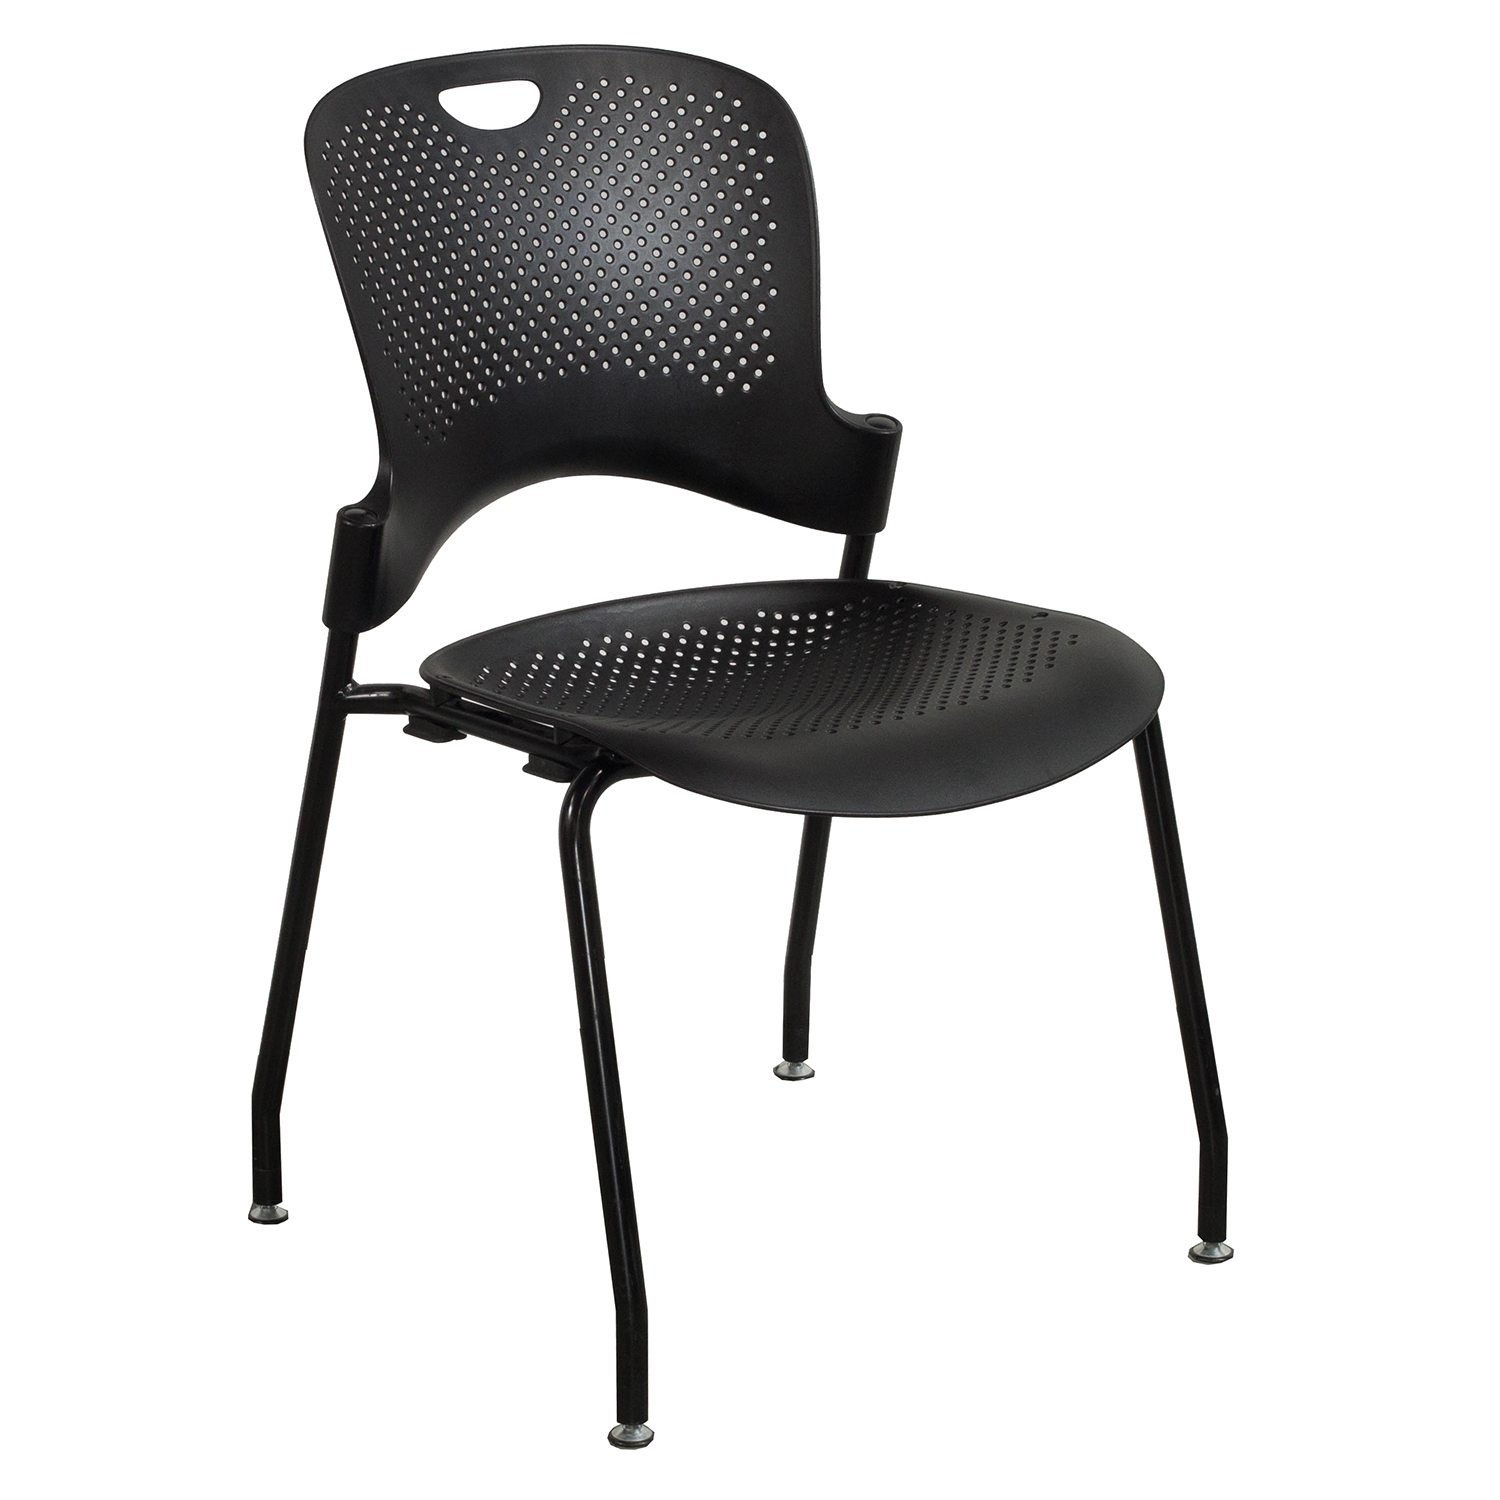 Caper Chair Herman Miller Caper Used Armless Stack Chair Black